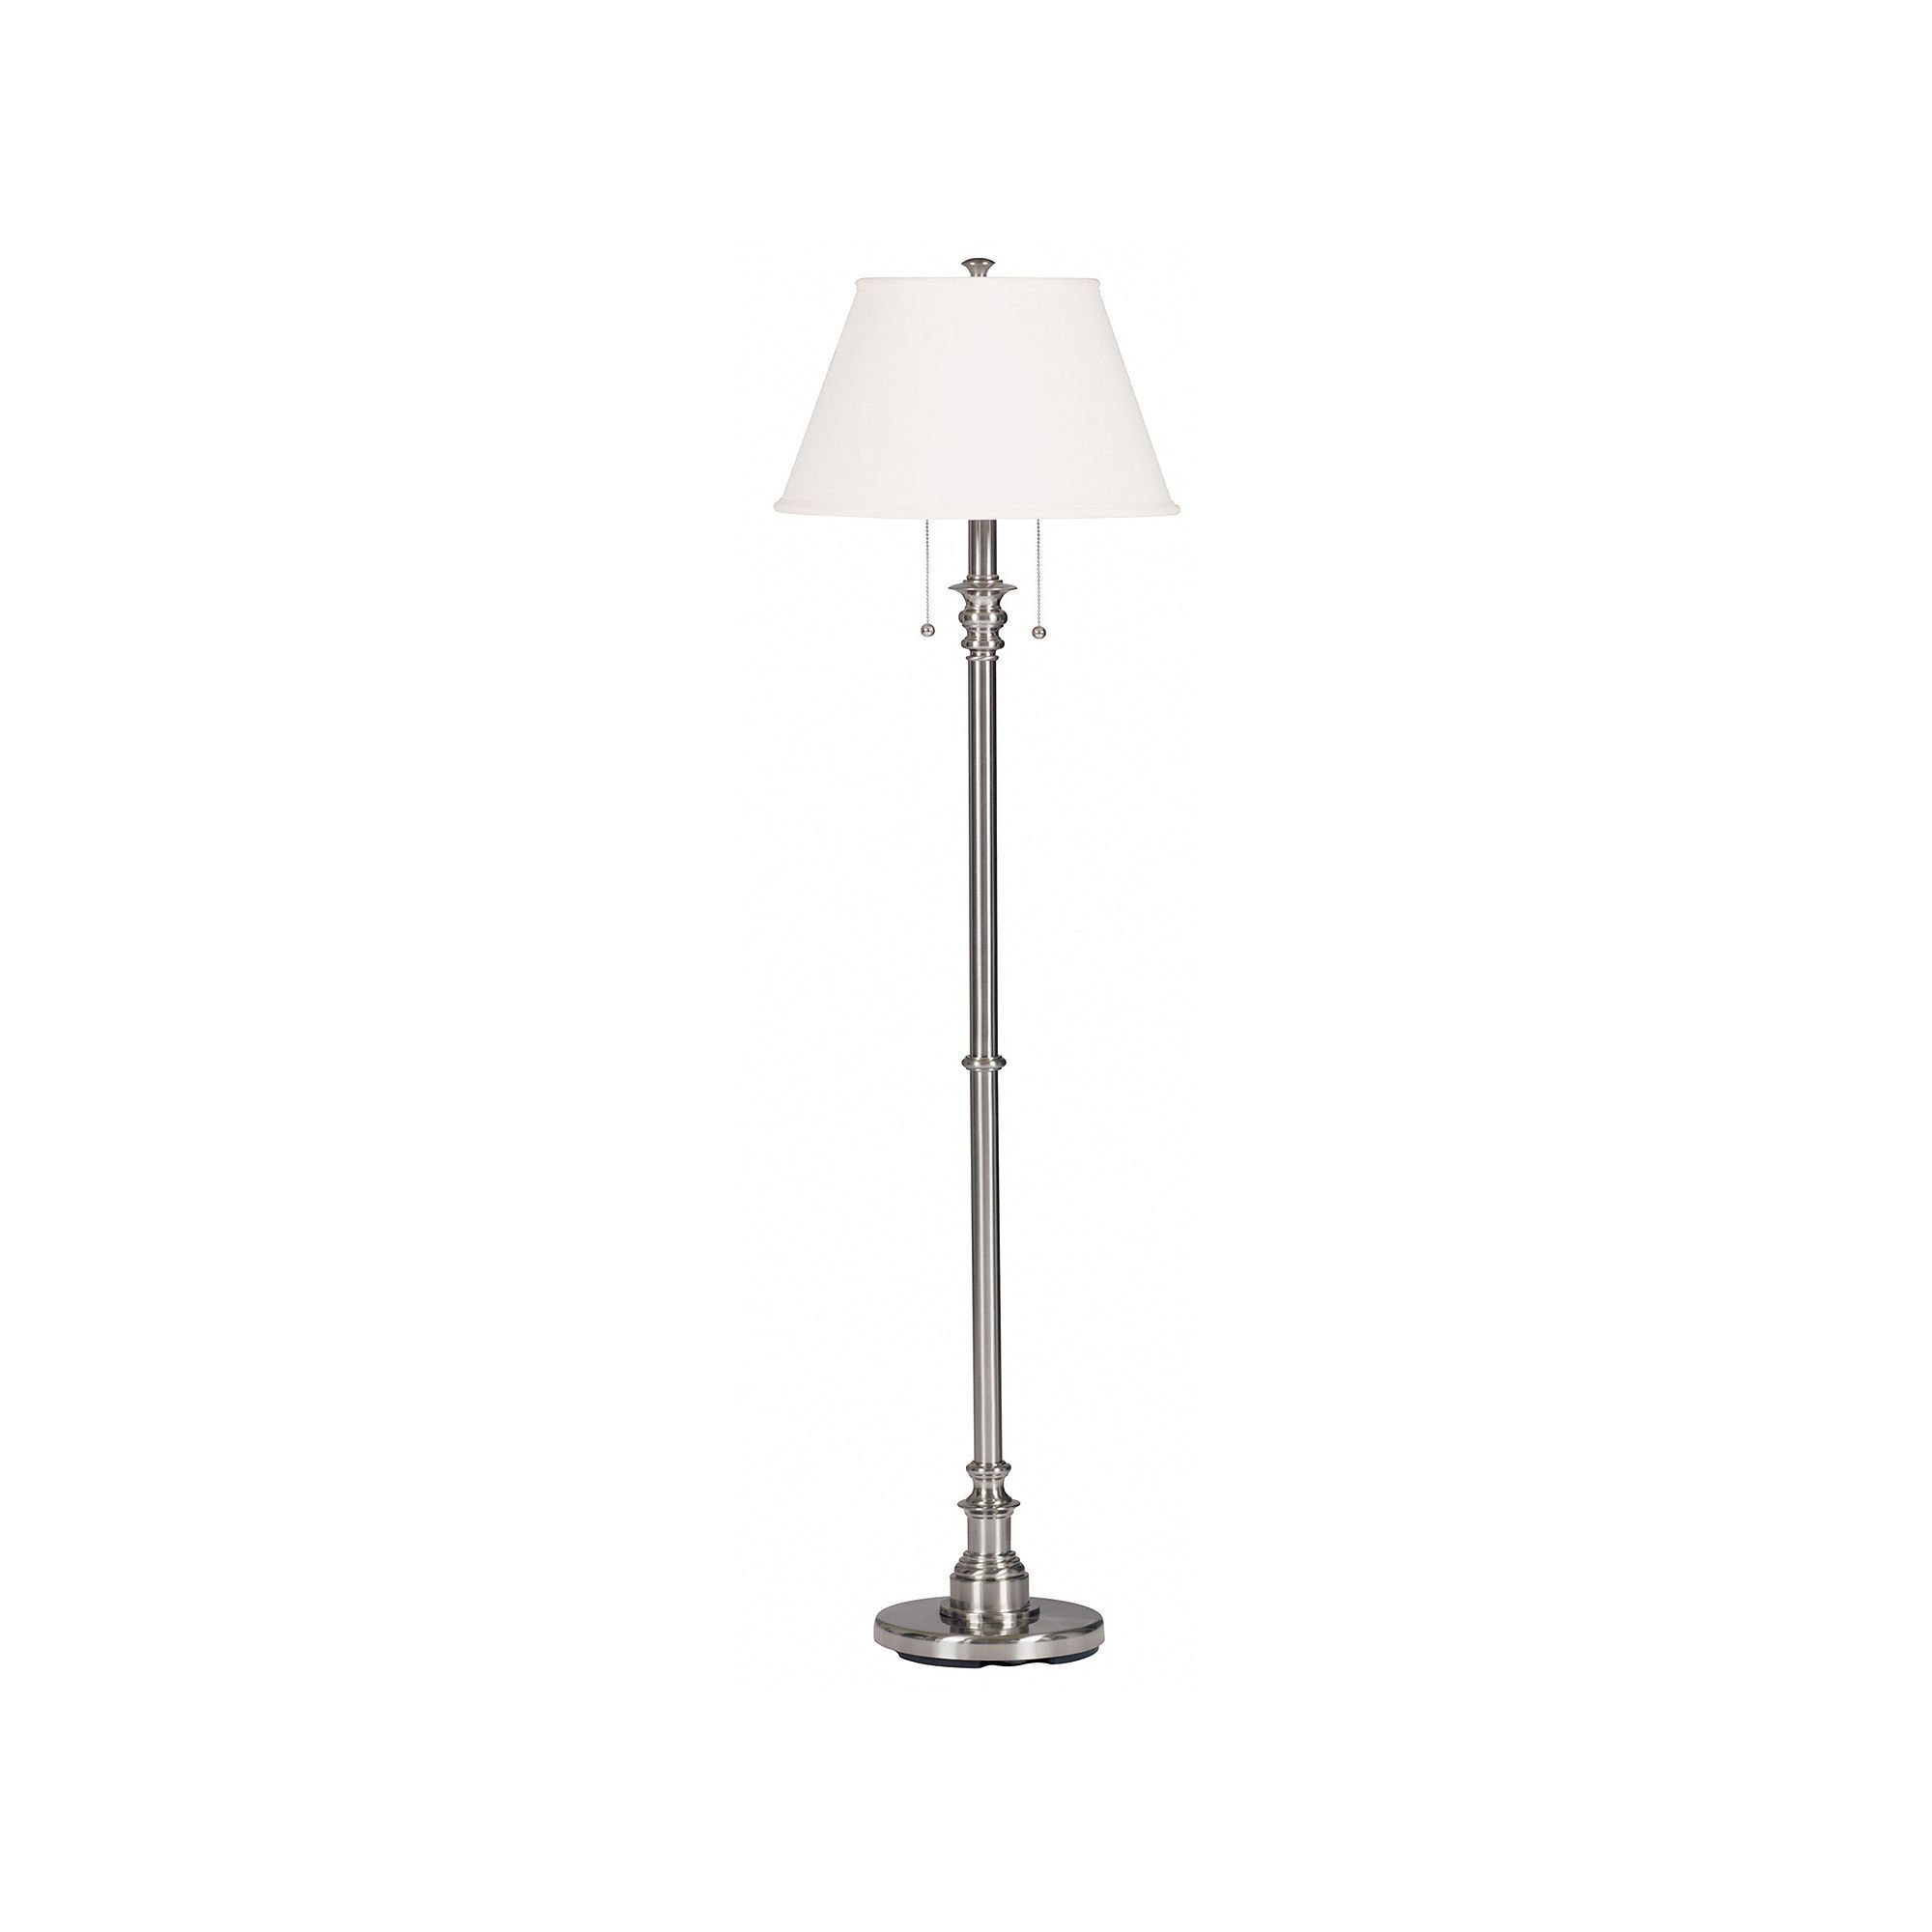 Kohls Floor Lamps Fair Kenroy Home Spyglass Floor Lamp  Floor Lamp 2018